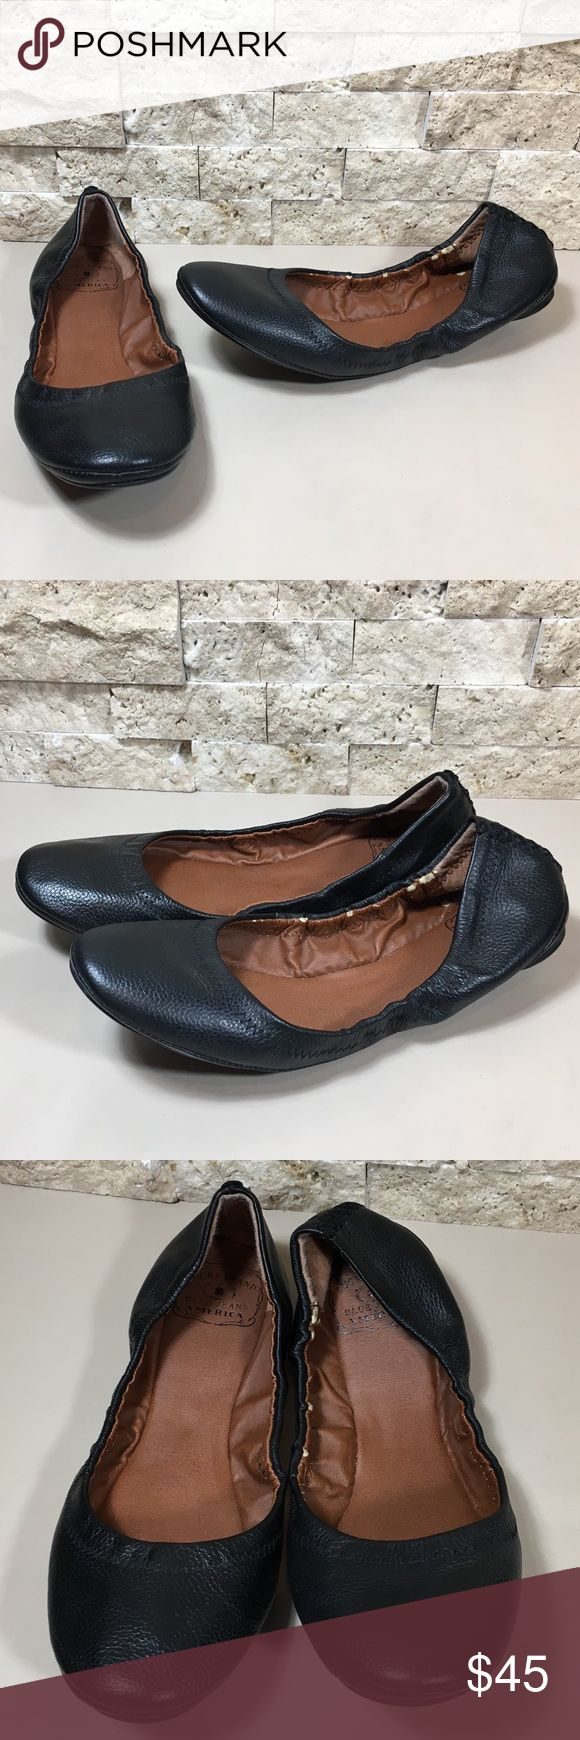 Lucky Erin Black Leather Ballet Flats Shoes Size 8 Lucky Erin black leather slip on ballet flats. Great preloved condition, worn only a few times, inside is peeling a bit but has been painted with leather paint to reduce further peeling, please see photos. Women's size 8 M.  f829 Lucky Brand Shoes Flats & Loafers